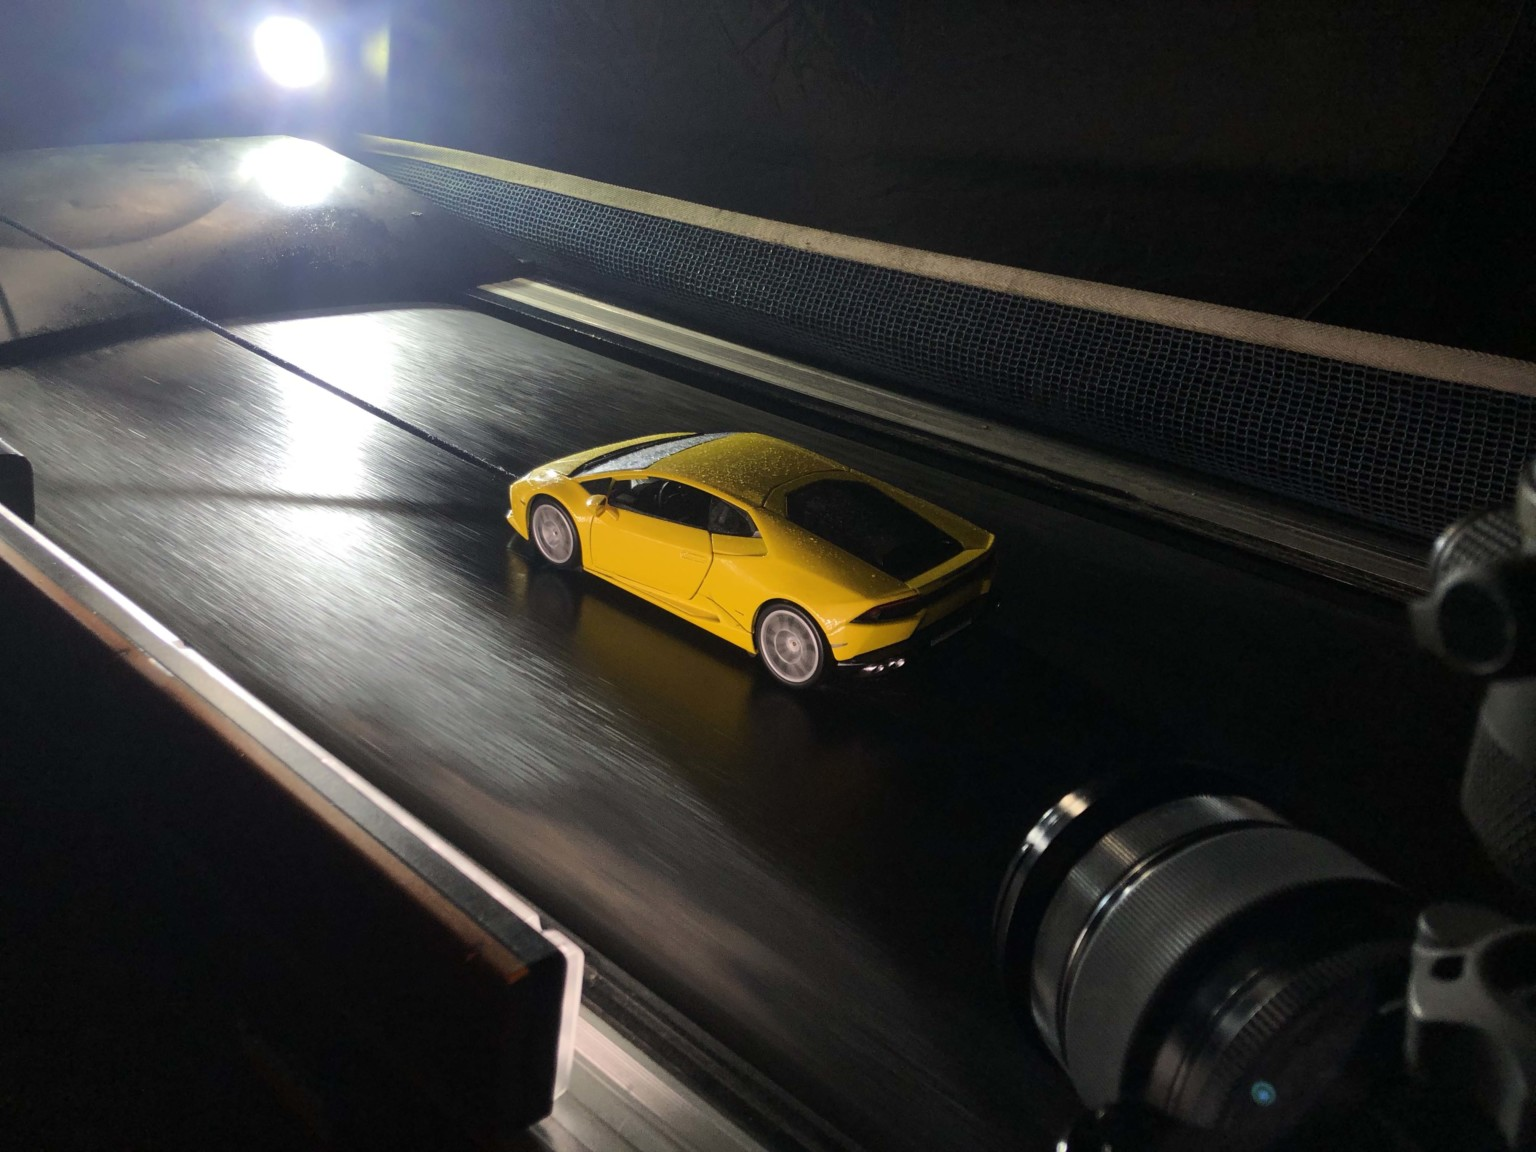 Lamborghini Toy Car Photography (4)